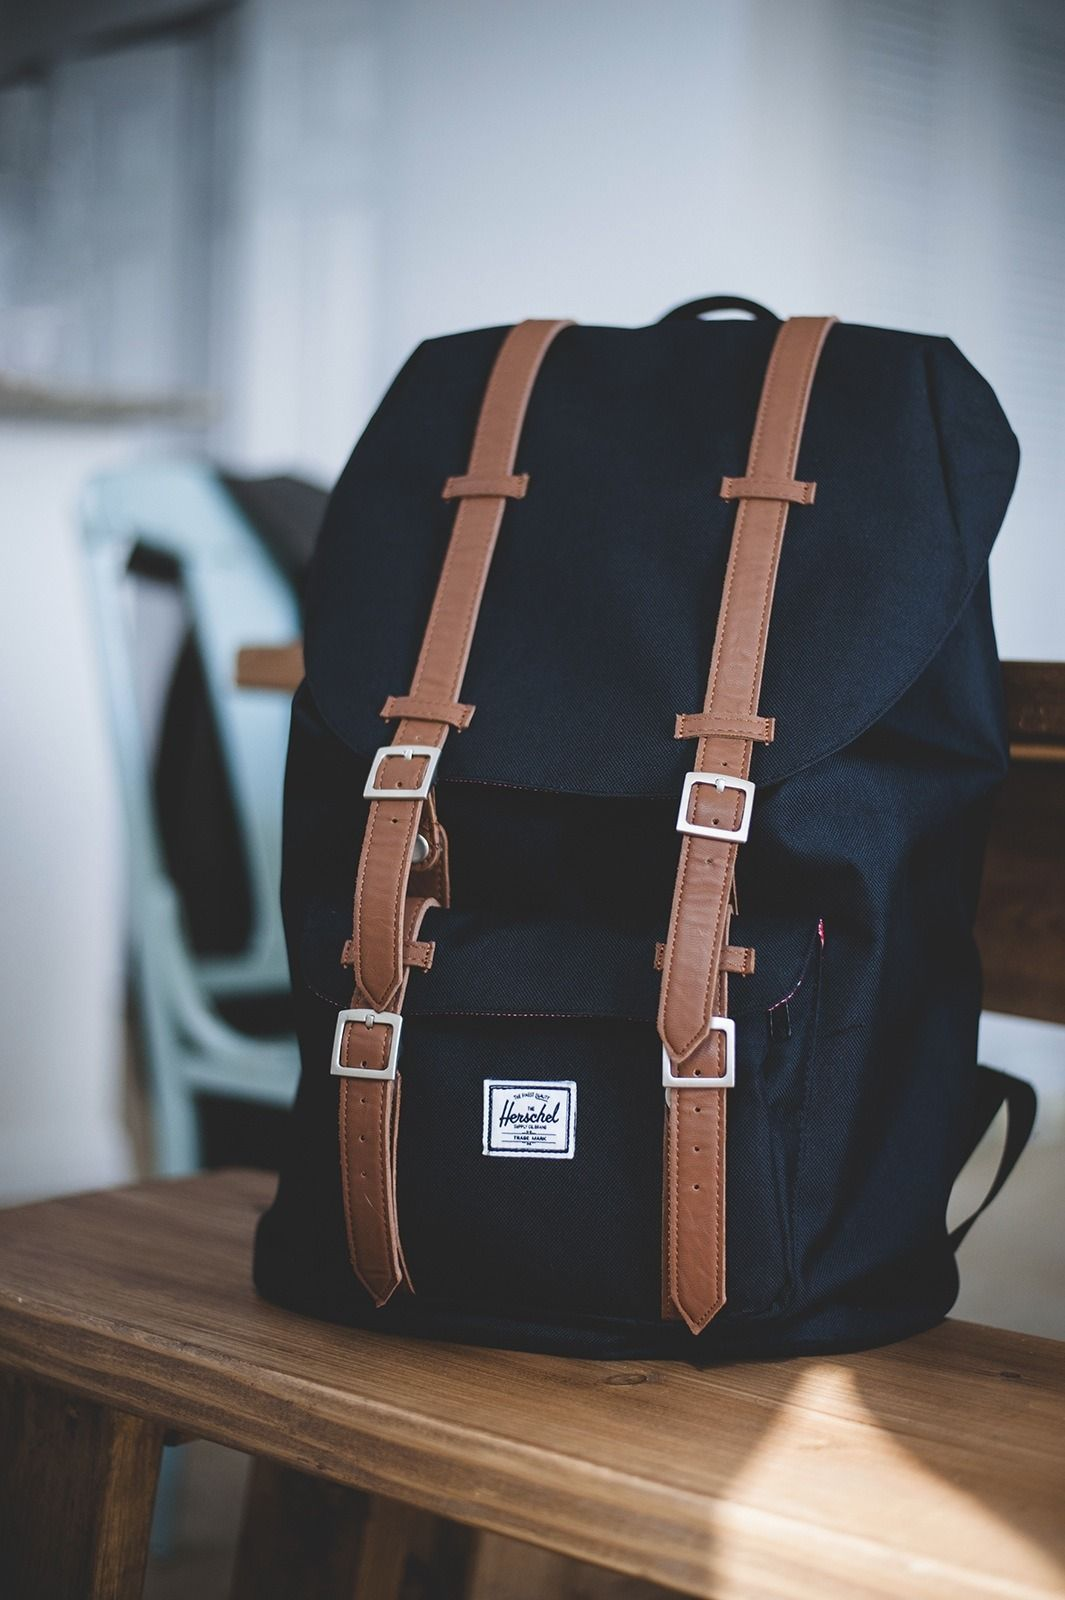 Mid Size Herschel Little America Backpack in Navy or Black (can t decide)..  For Iceland 8c46bb1187239